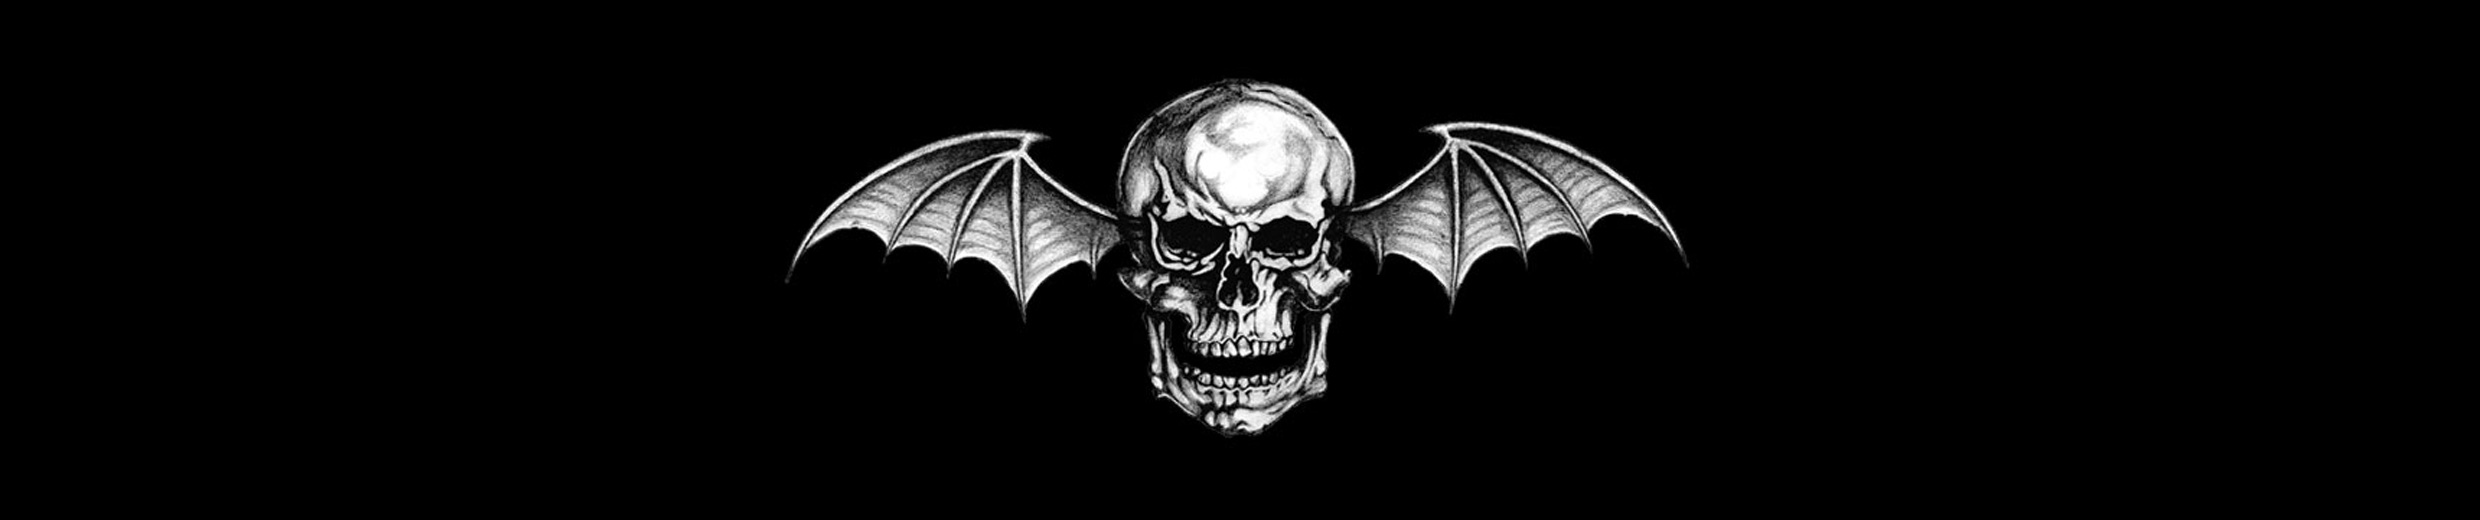 hail to the king deathbat soundtrack download